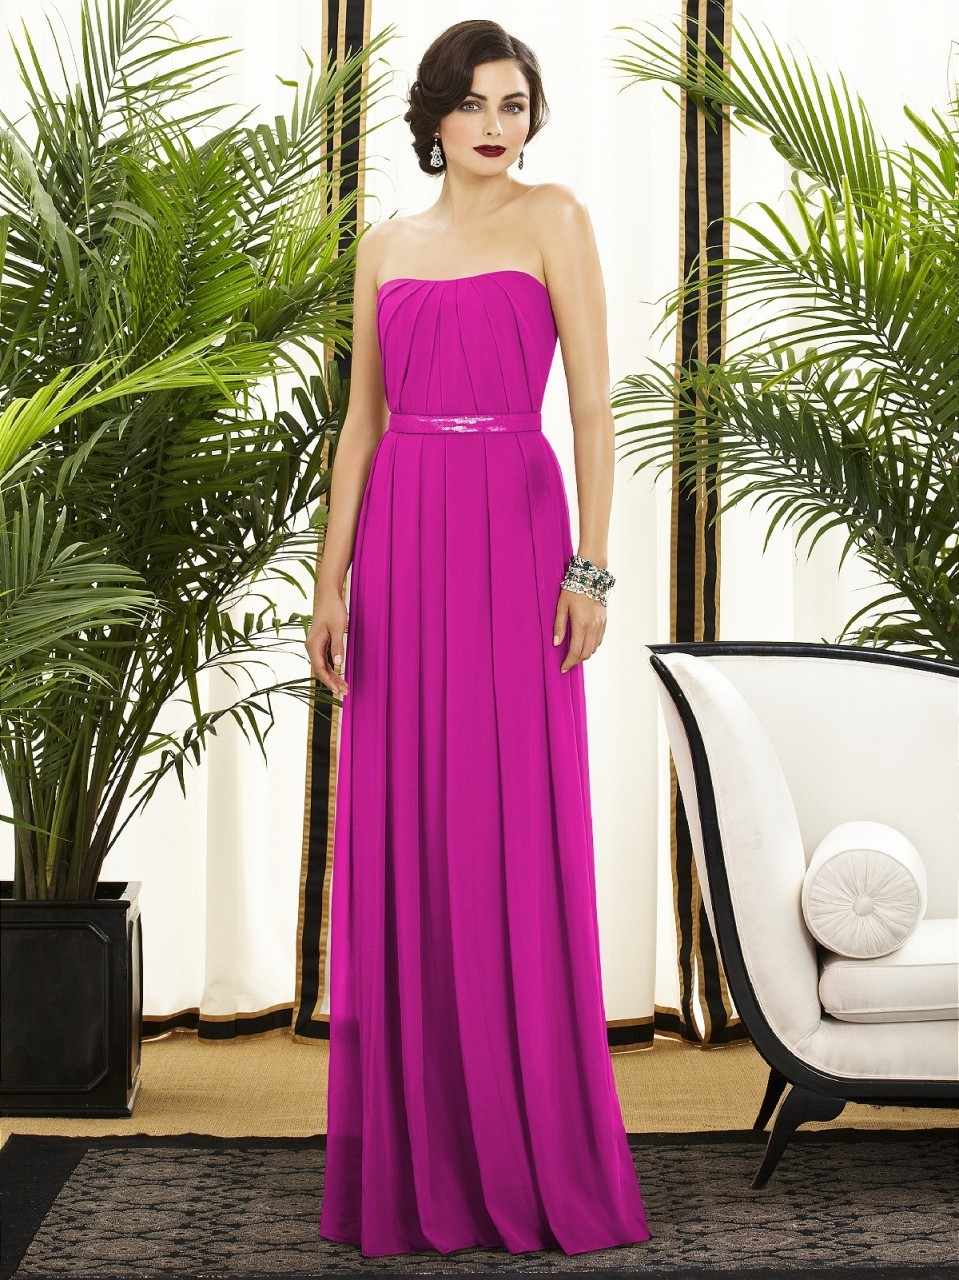 Dessy bridesmaid dressesdessy dresses 2886d2886the dessy group dessy bridesmaid dresses dessy 2886 loading zoom ombrellifo Choice Image